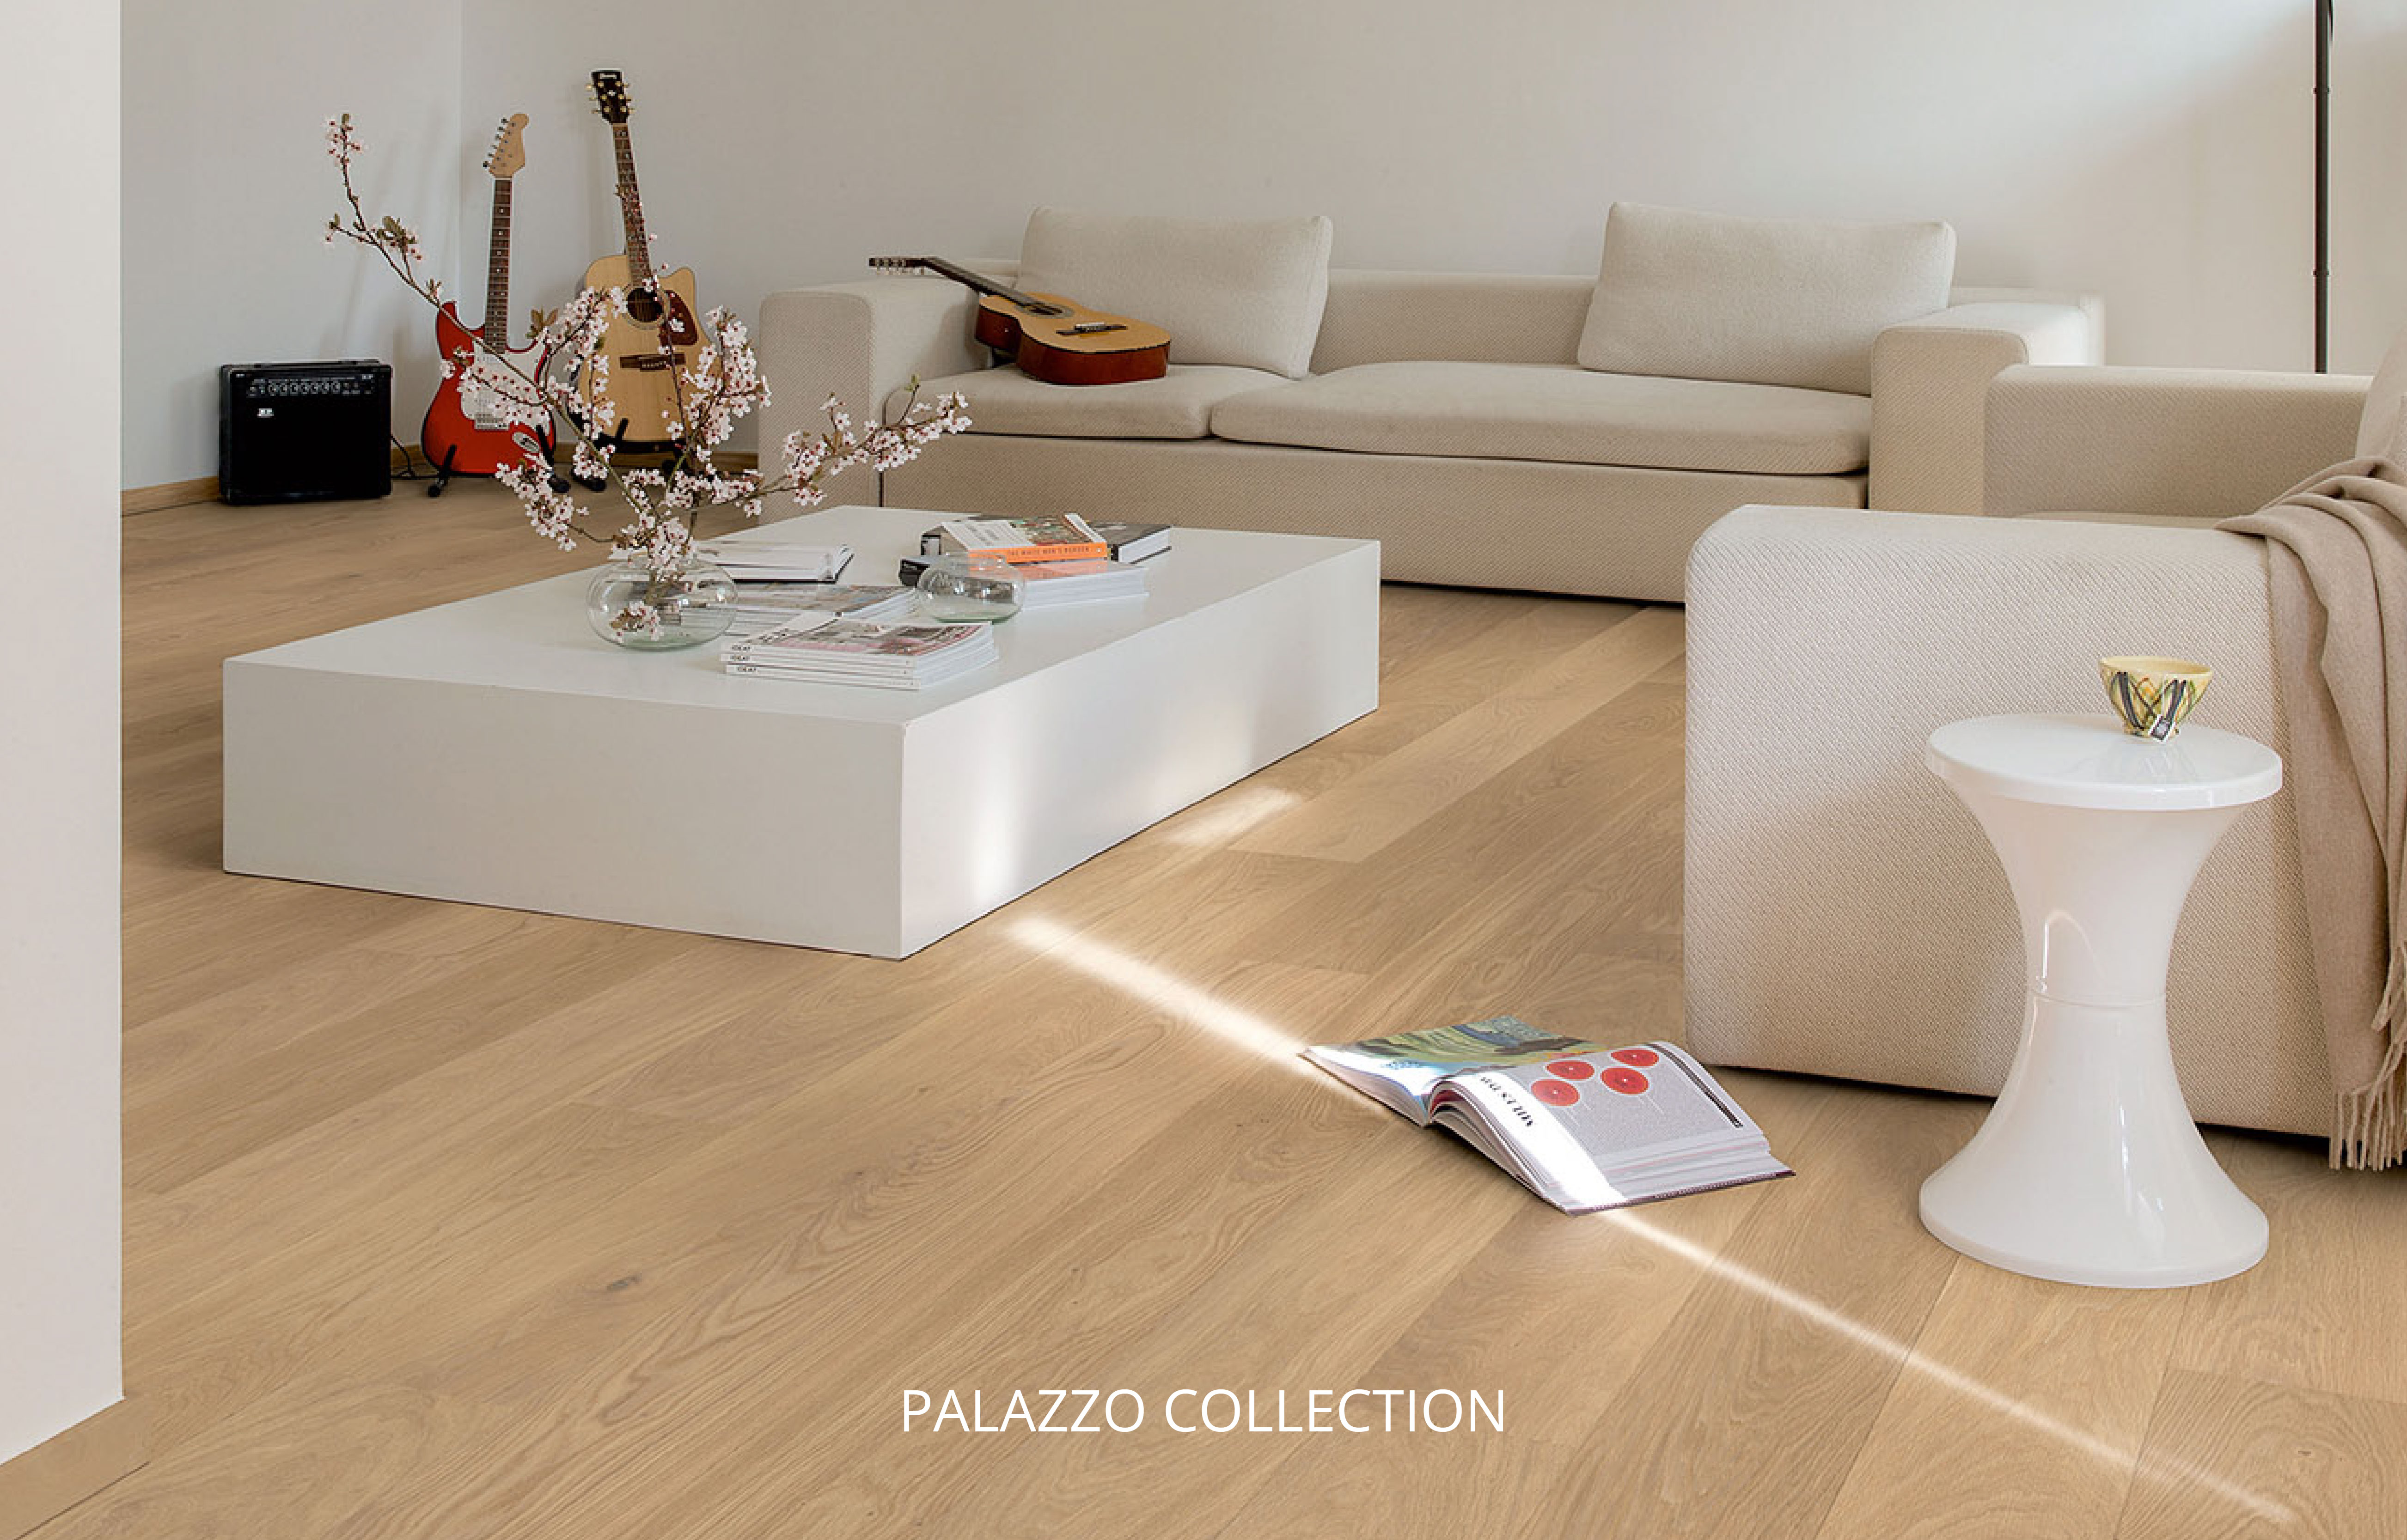 PALAZZO COLLECTION 06